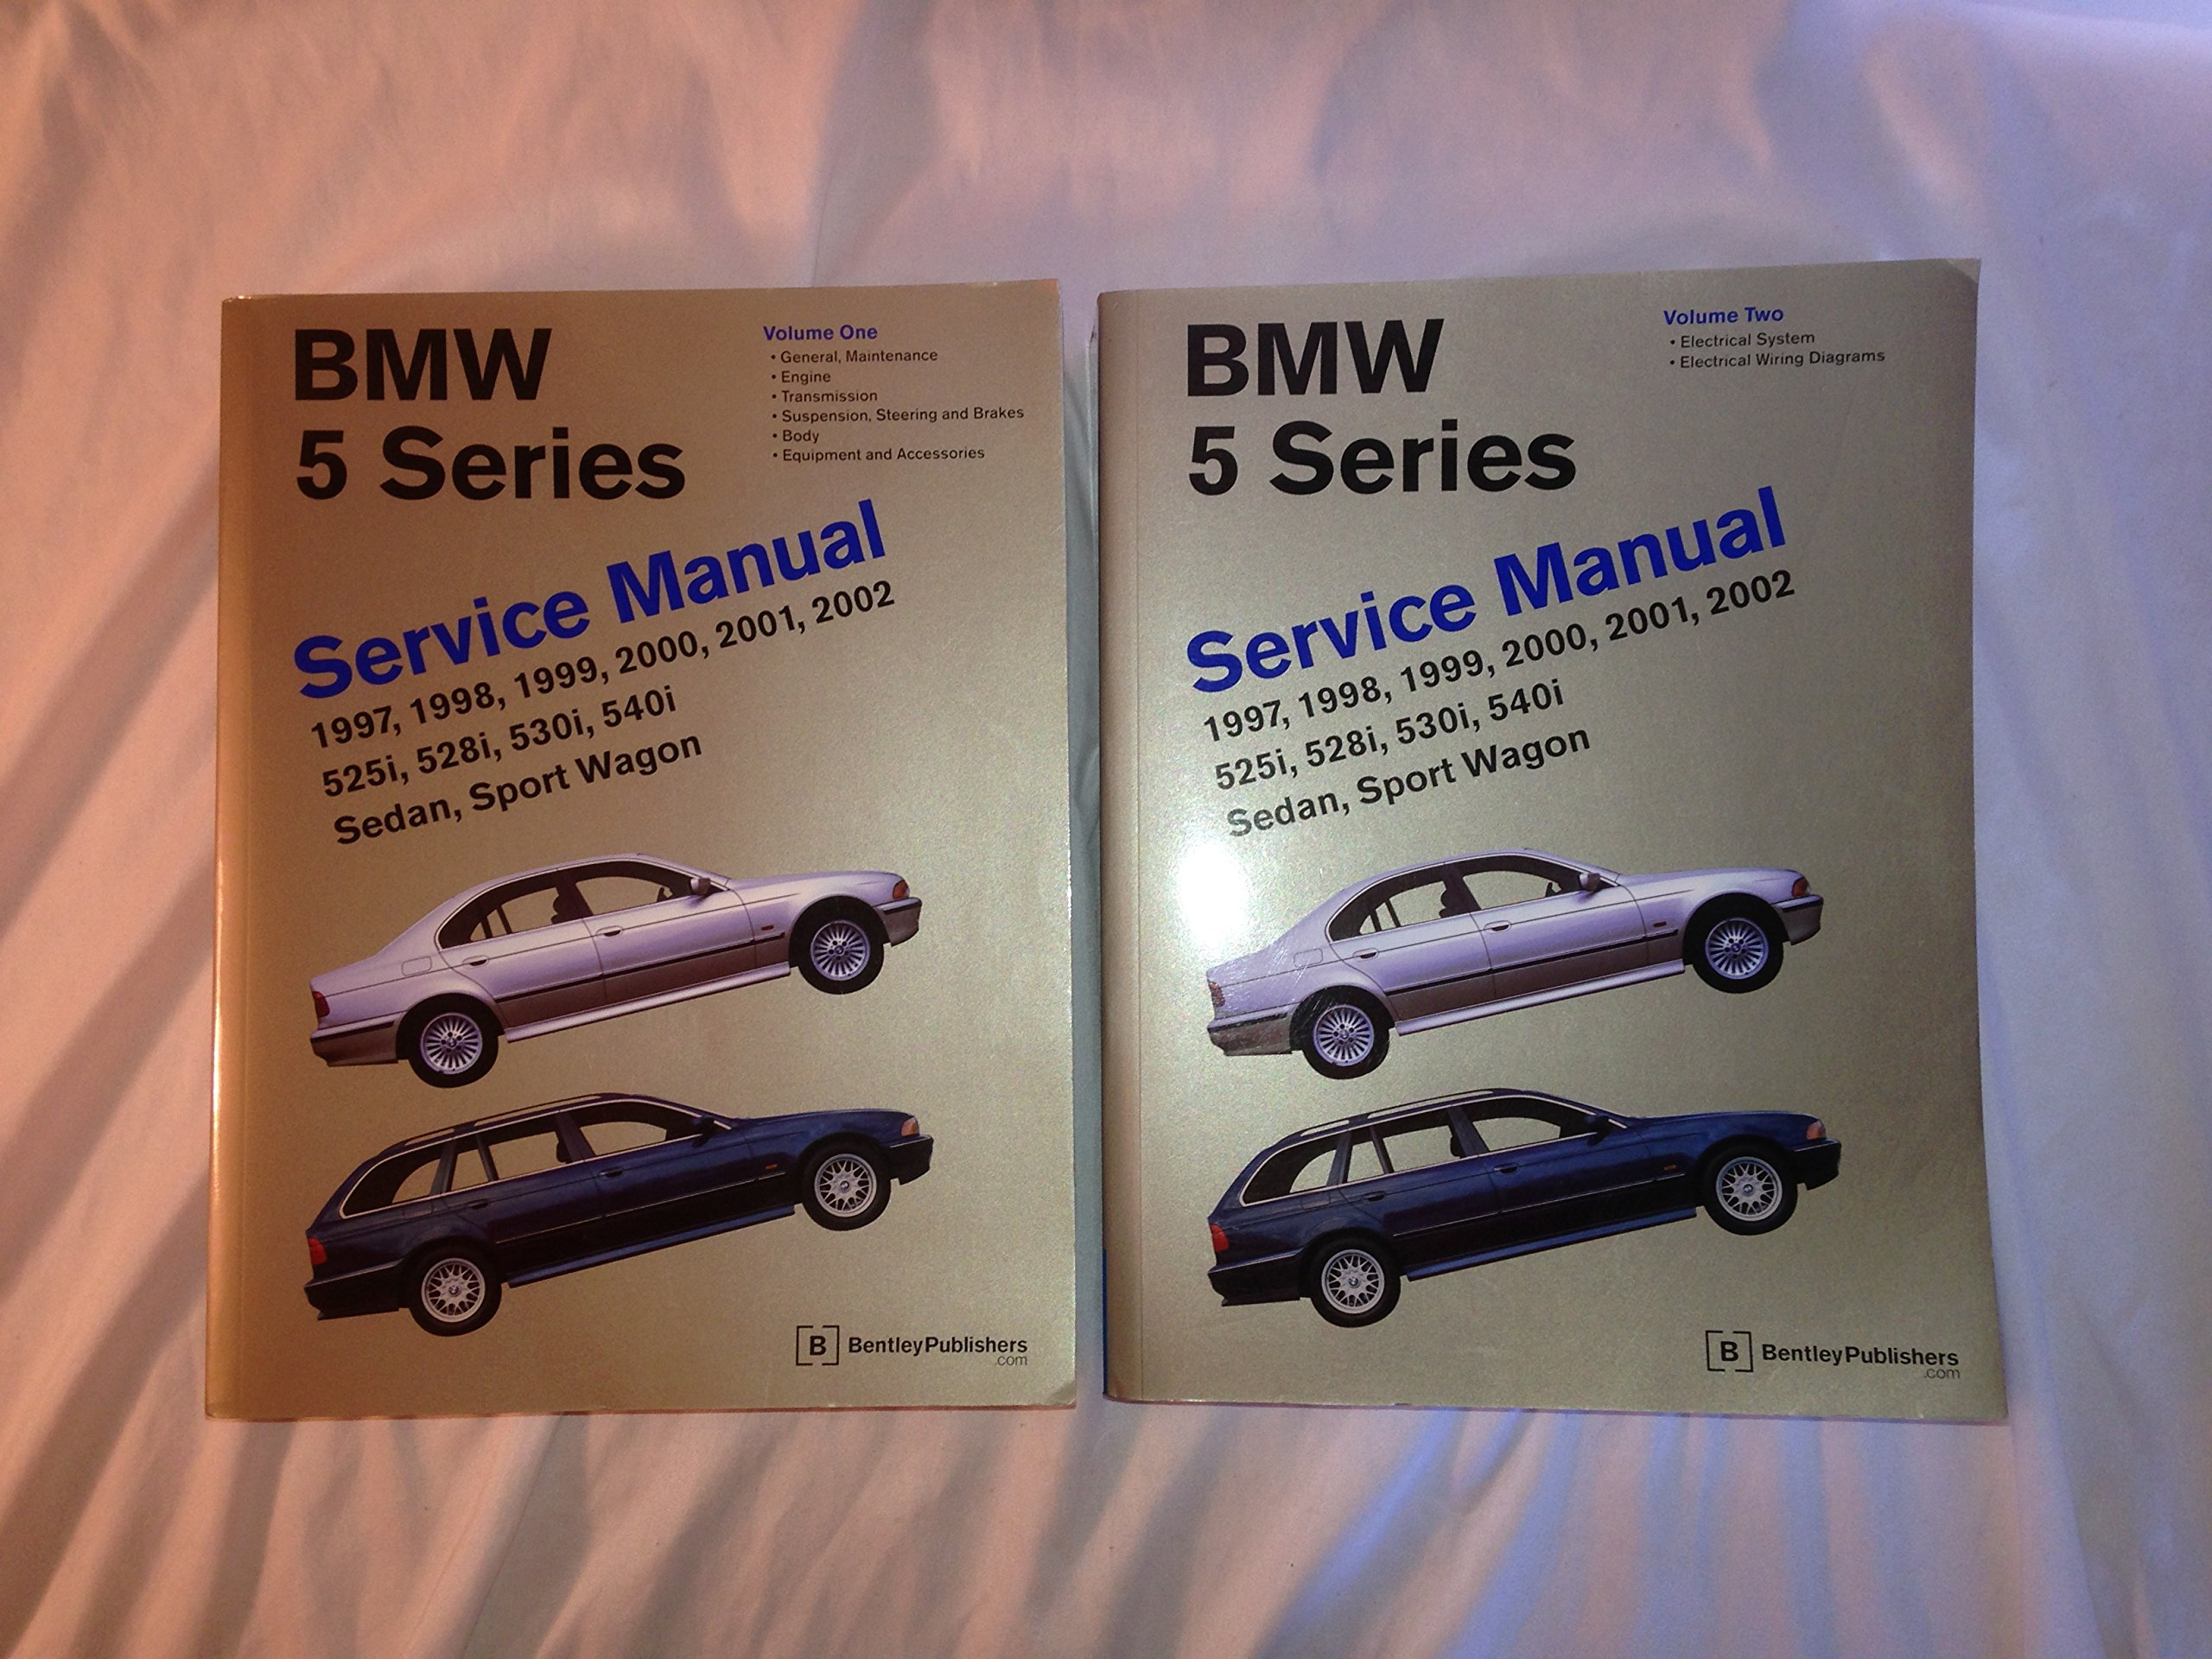 1997 2002 Bmw 5 Series Bently Repair Shop Manual 2 Vol Set 528i Engine Diagram 9780837603179 Books